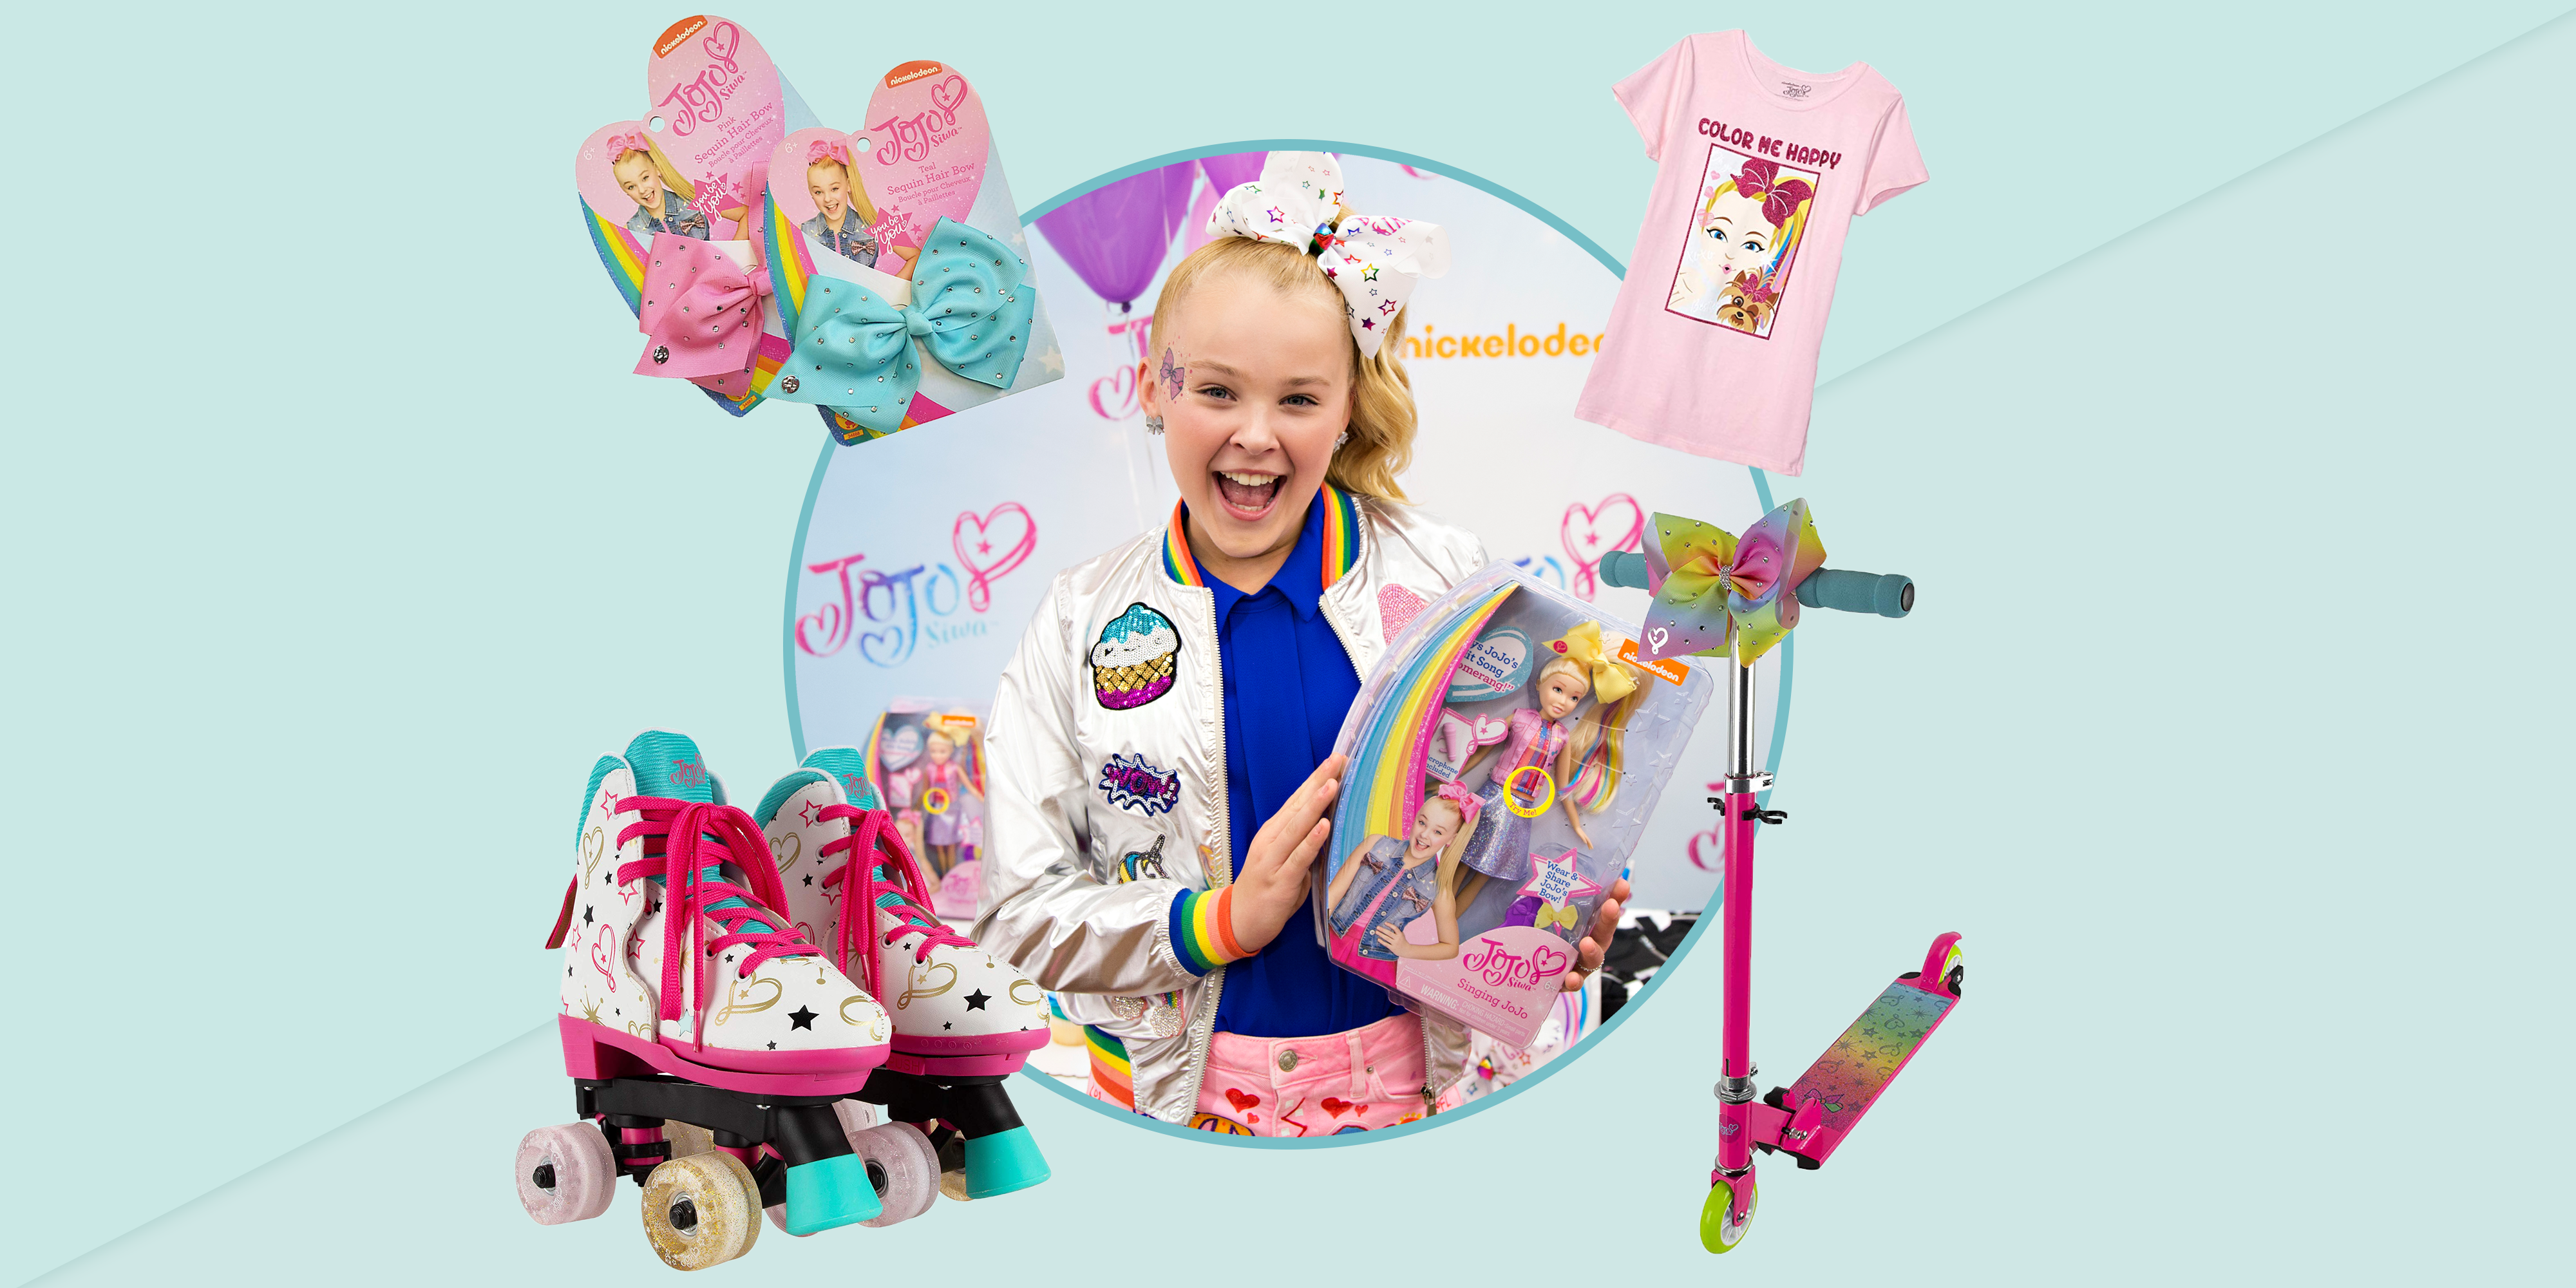 JoJo Siwa Amazon Prime Day 2019 Sales, Launches, and Deals